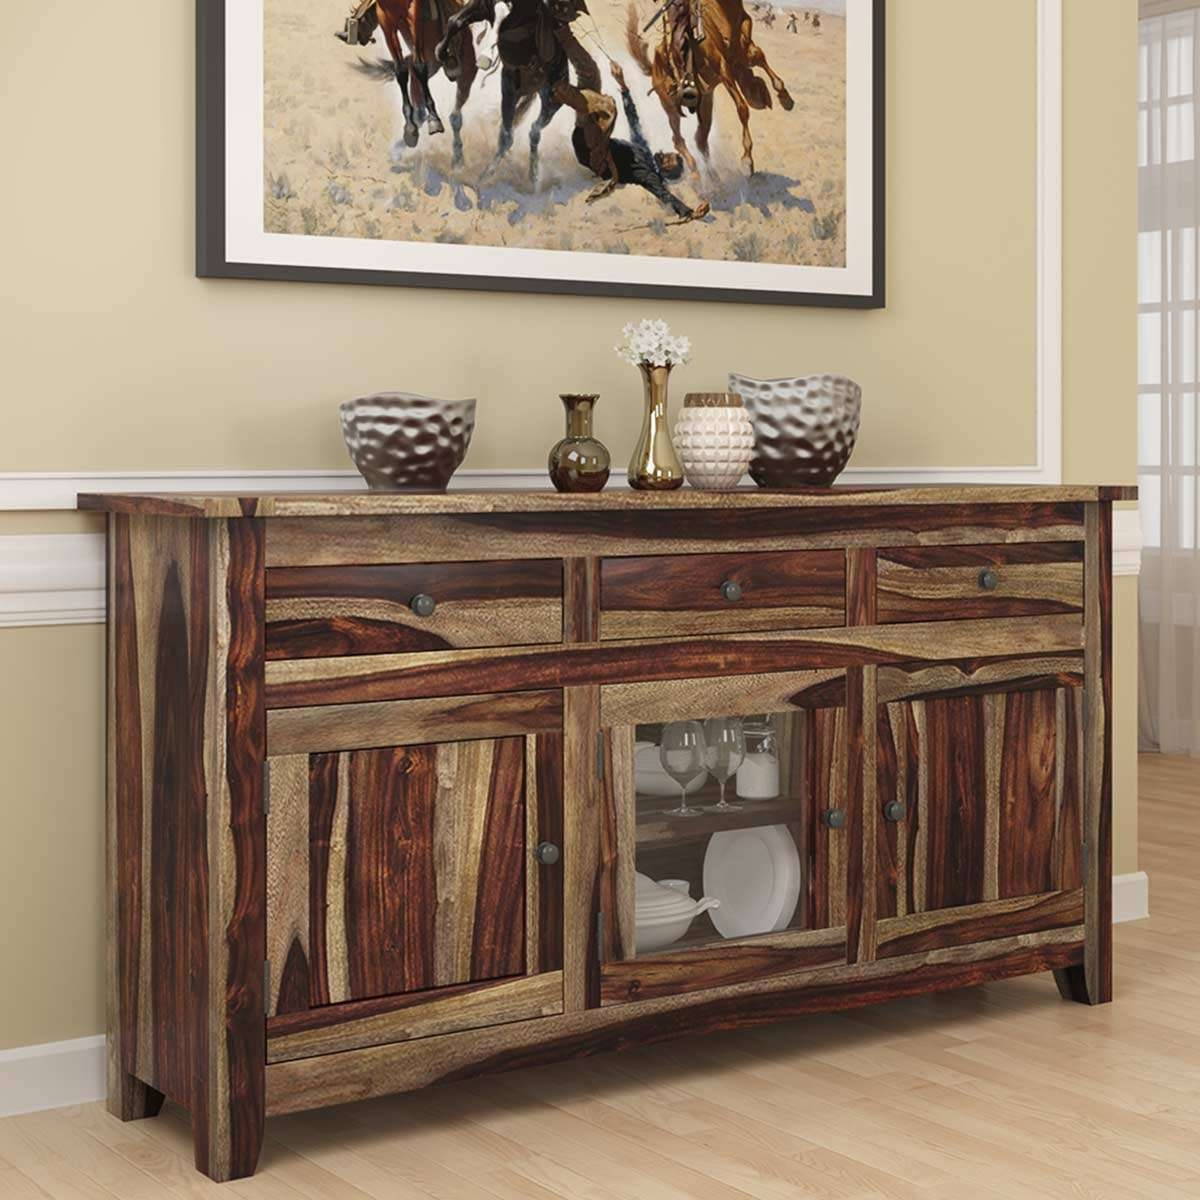 Modern Rustic Solid Wood Glass Door 3 Drawer Sideboard Cabinet Within Sideboards With Glass Doors And Drawers (View 6 of 20)